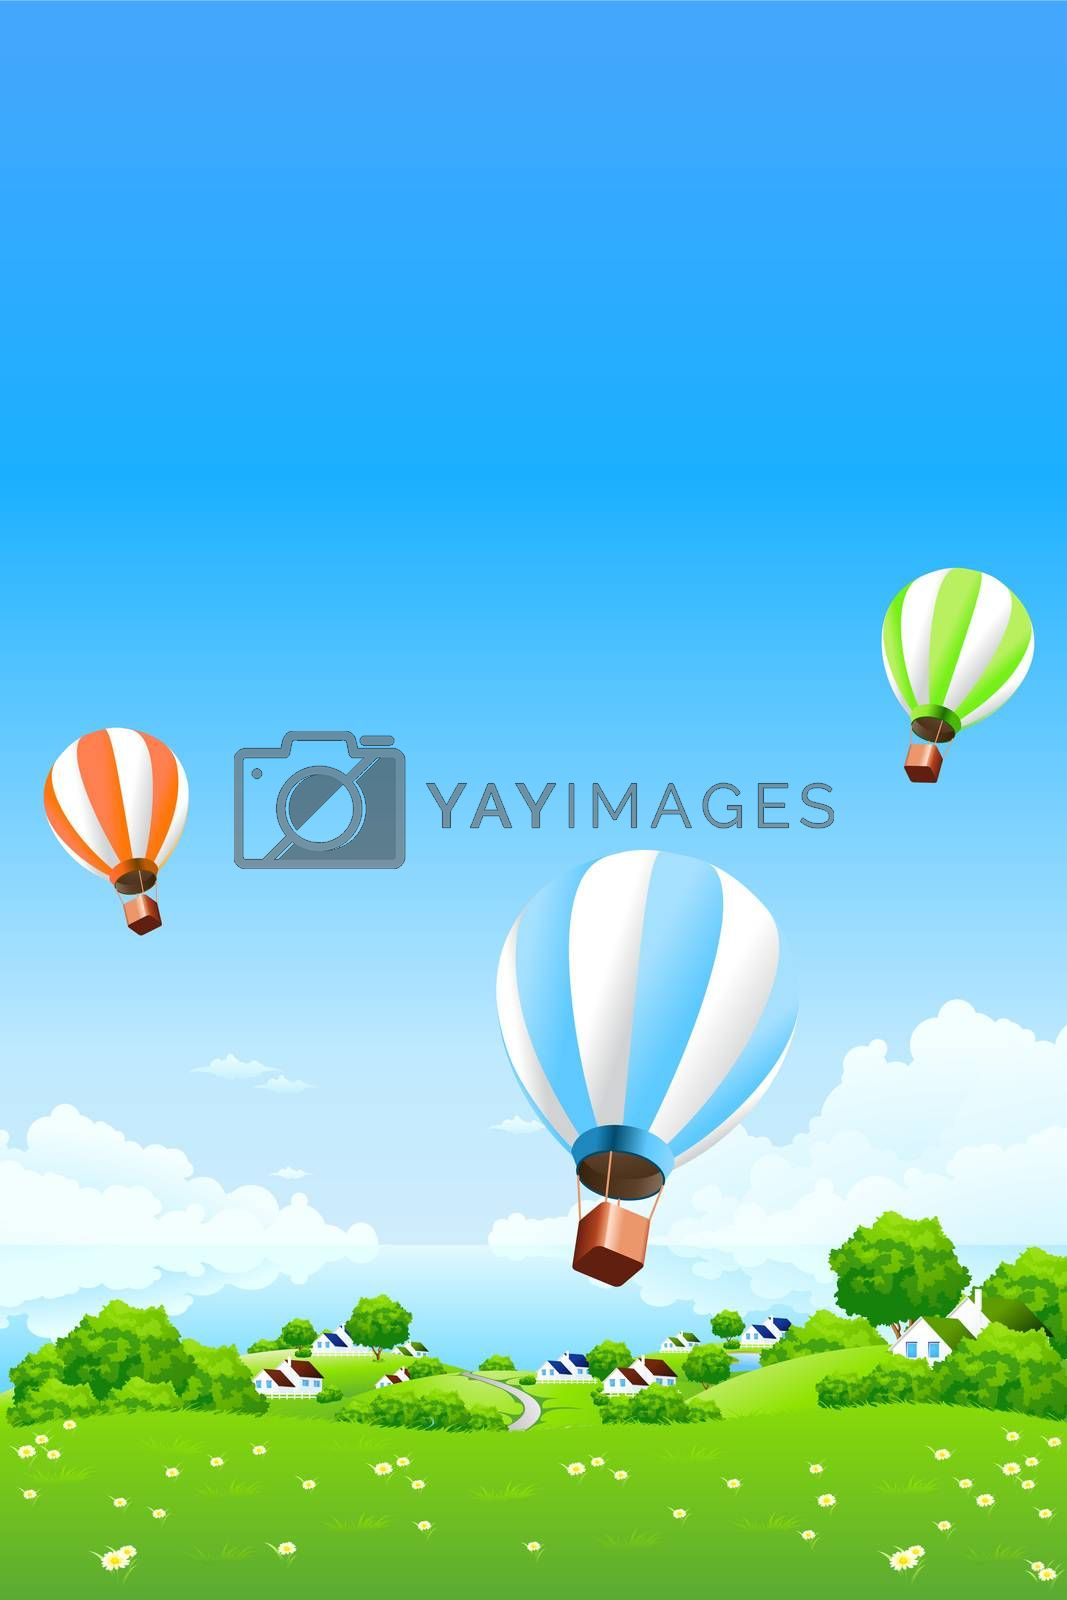 Green Landscape with Hot Air Balloons by WaD